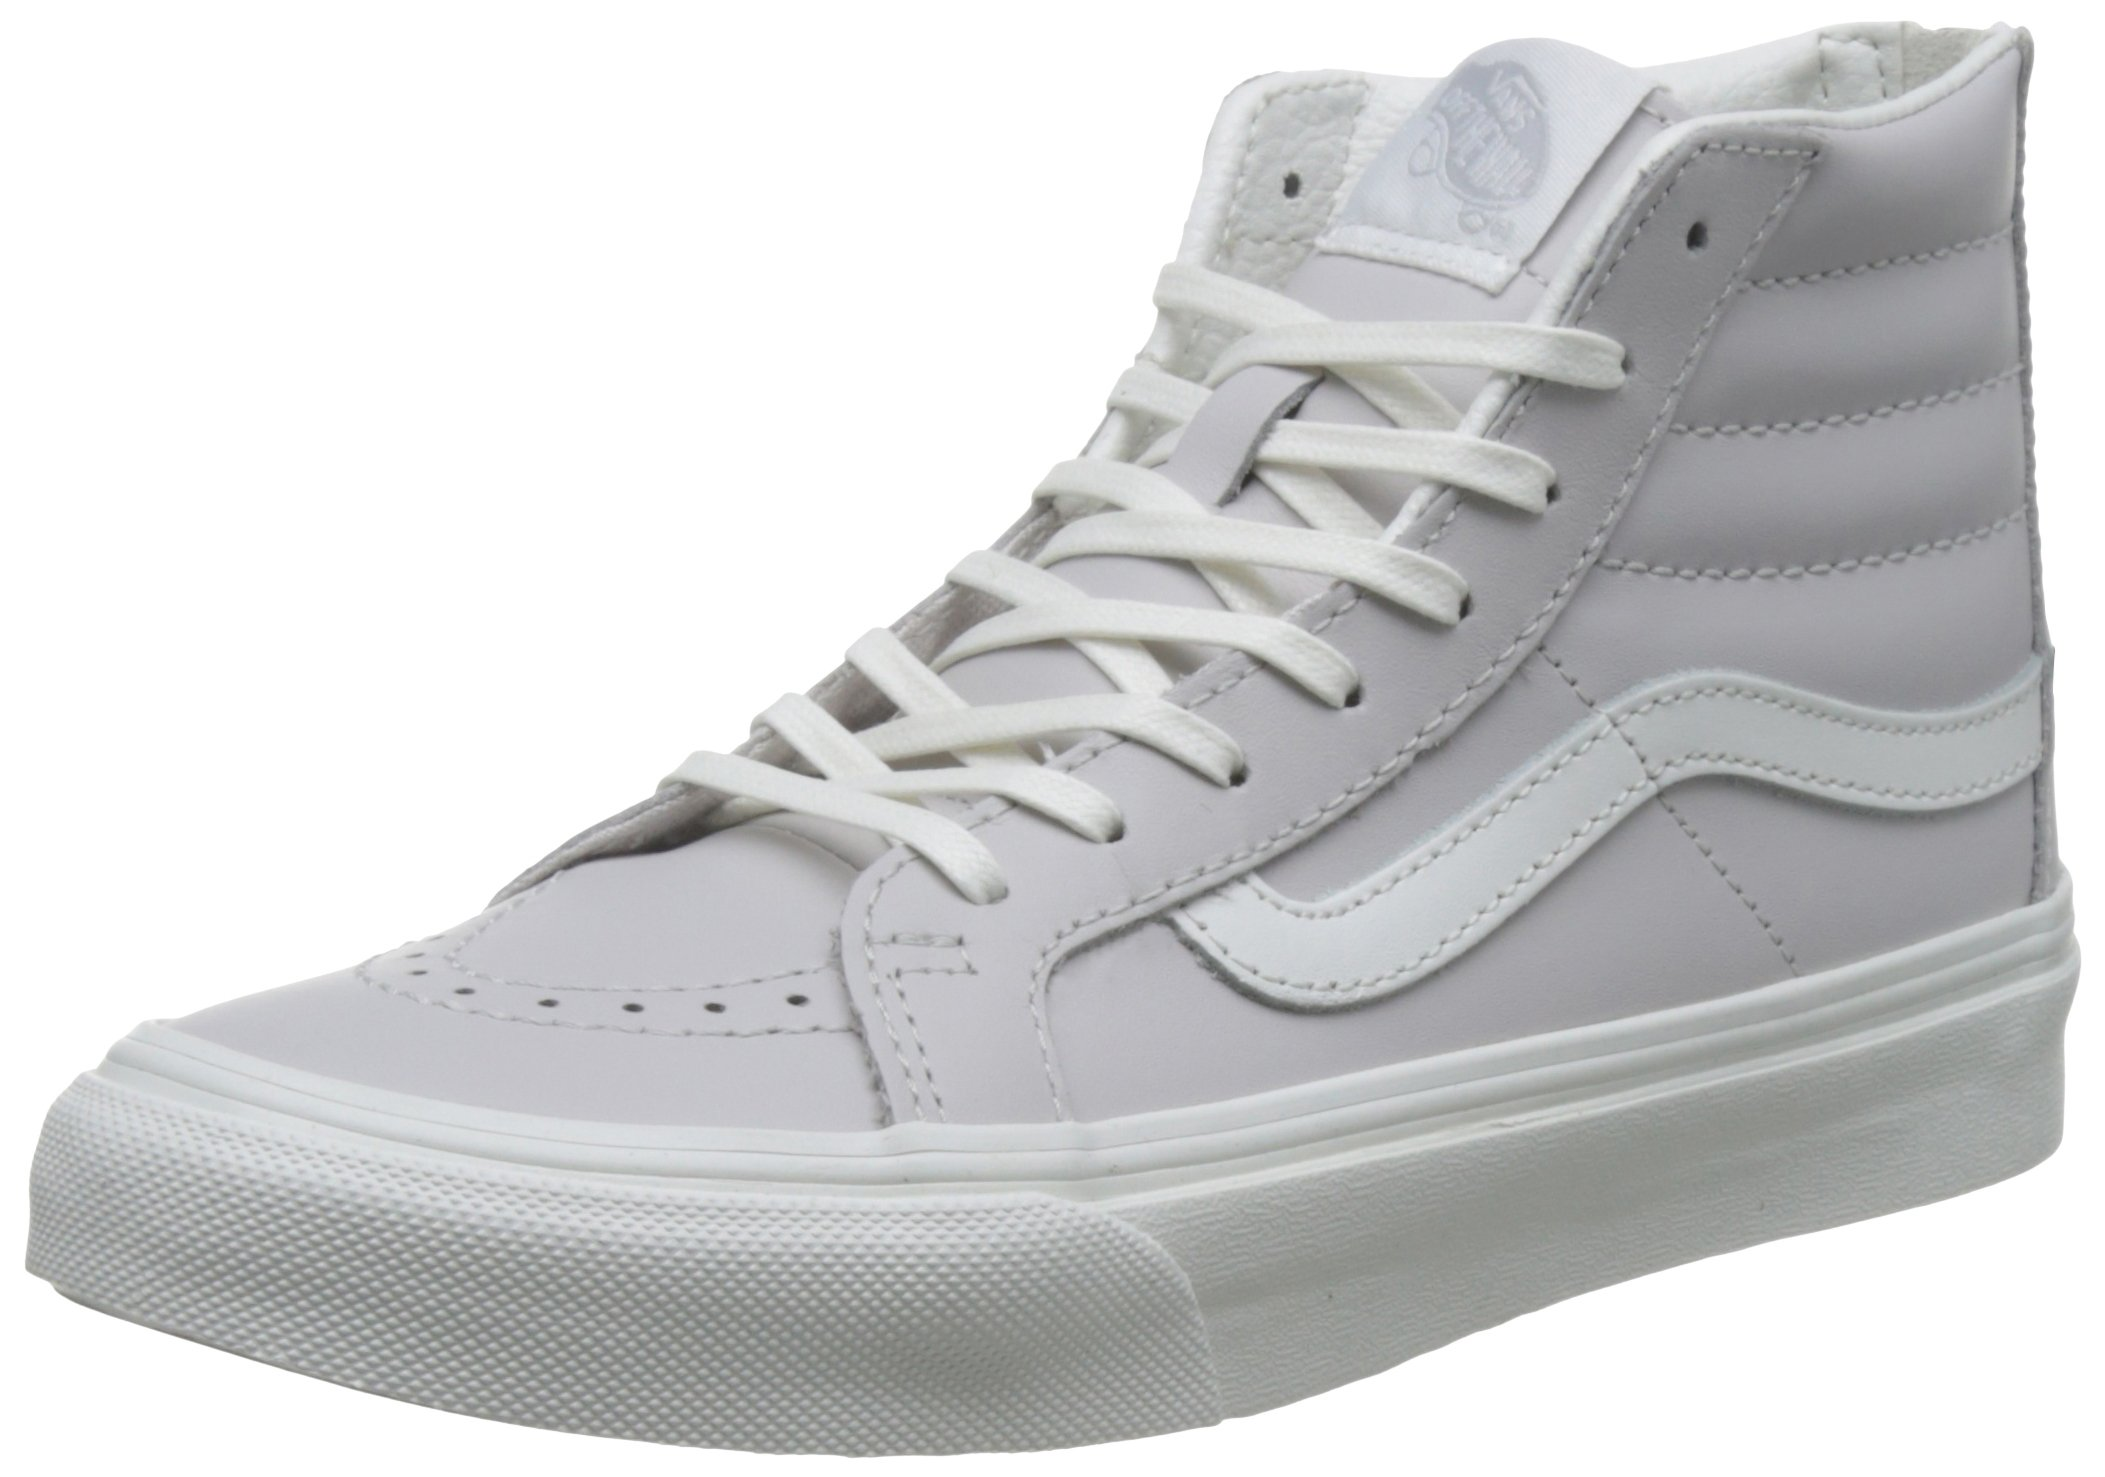 74ba94519d56 Galleon - Vans Unisex Leather SK8-Hi Slim Zip Wind Chime Blanc De Blanc  Sneaker - 7